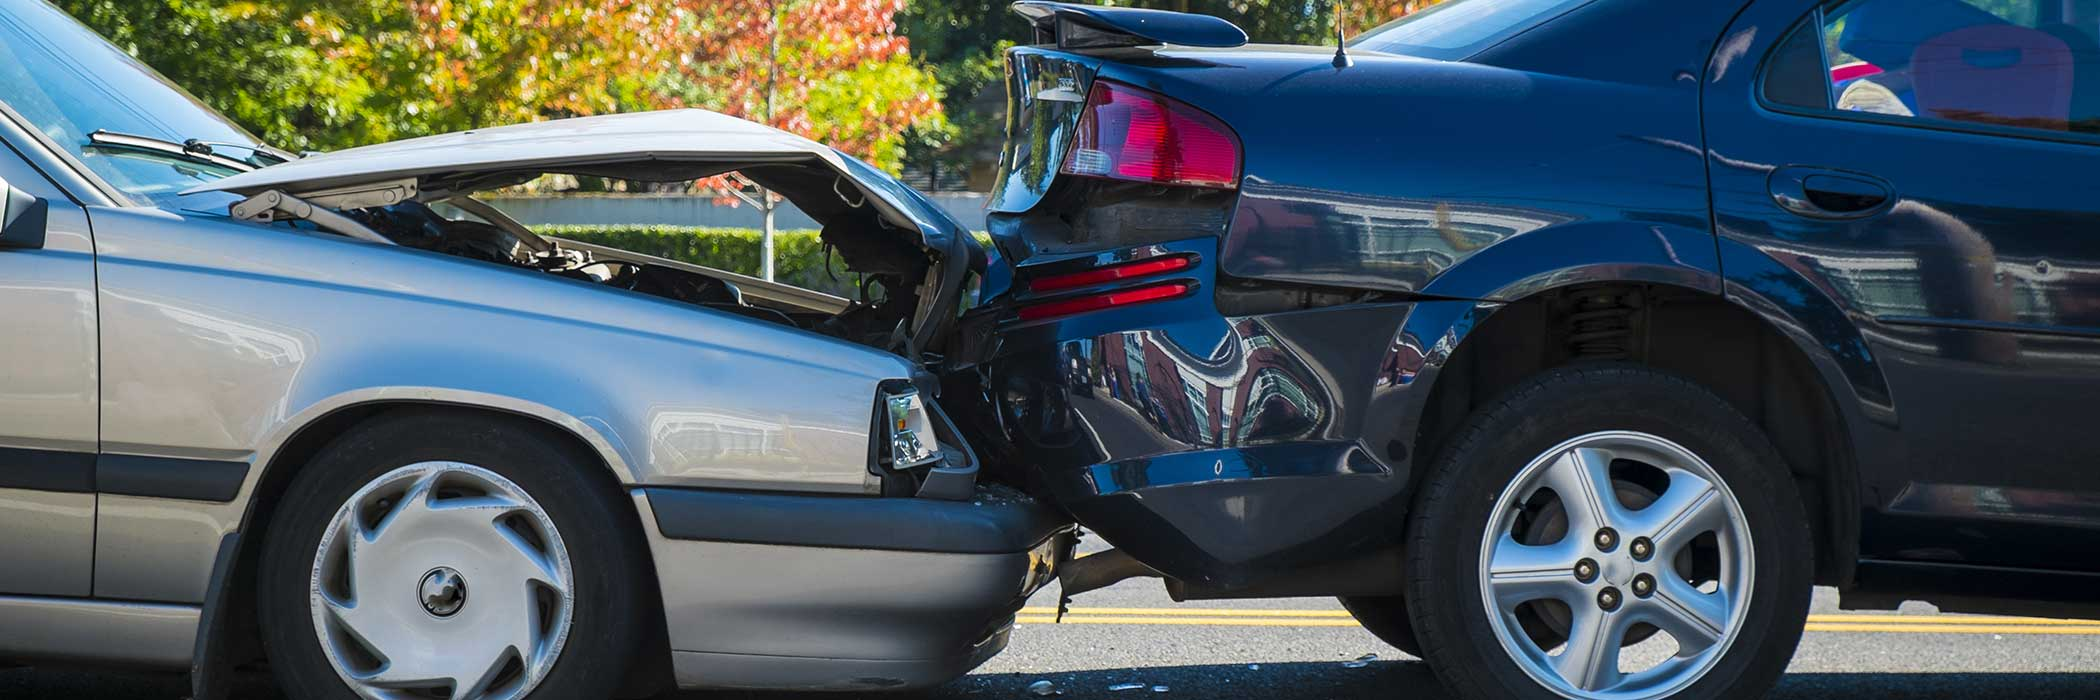 Getting Insight of Few Facts About Your Car Wreck Settlement